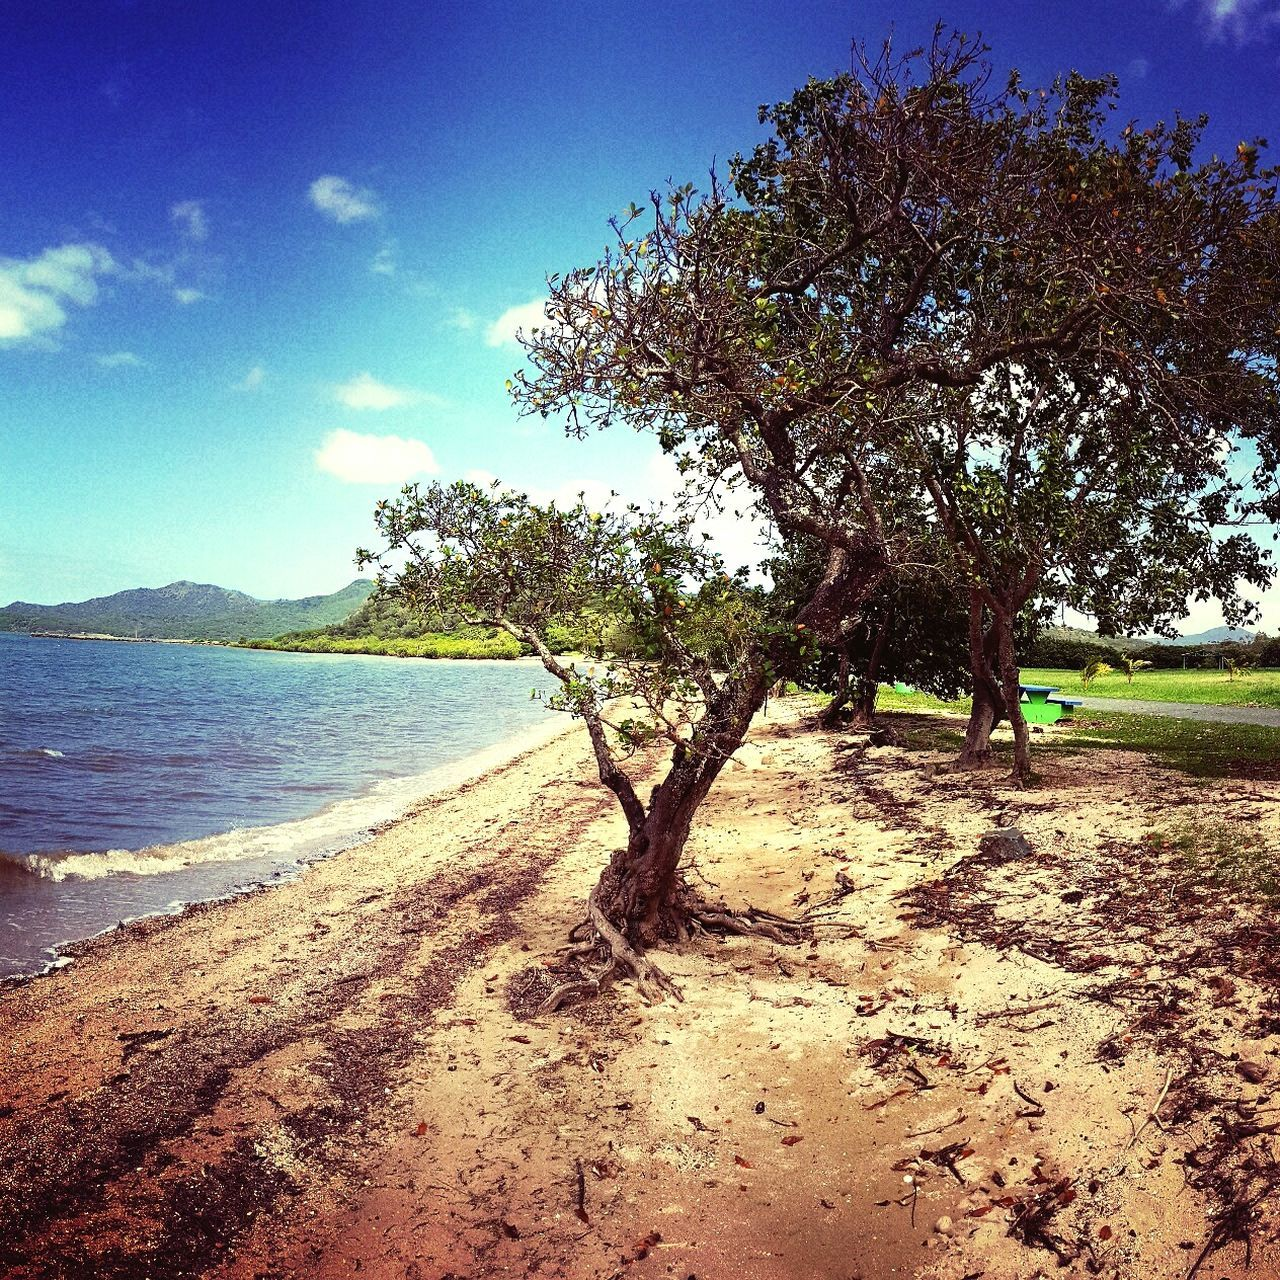 tree, nature, beauty in nature, tranquility, scenics, tranquil scene, landscape, day, growth, sky, sand, outdoors, branch, no people, water, clear sky, grass